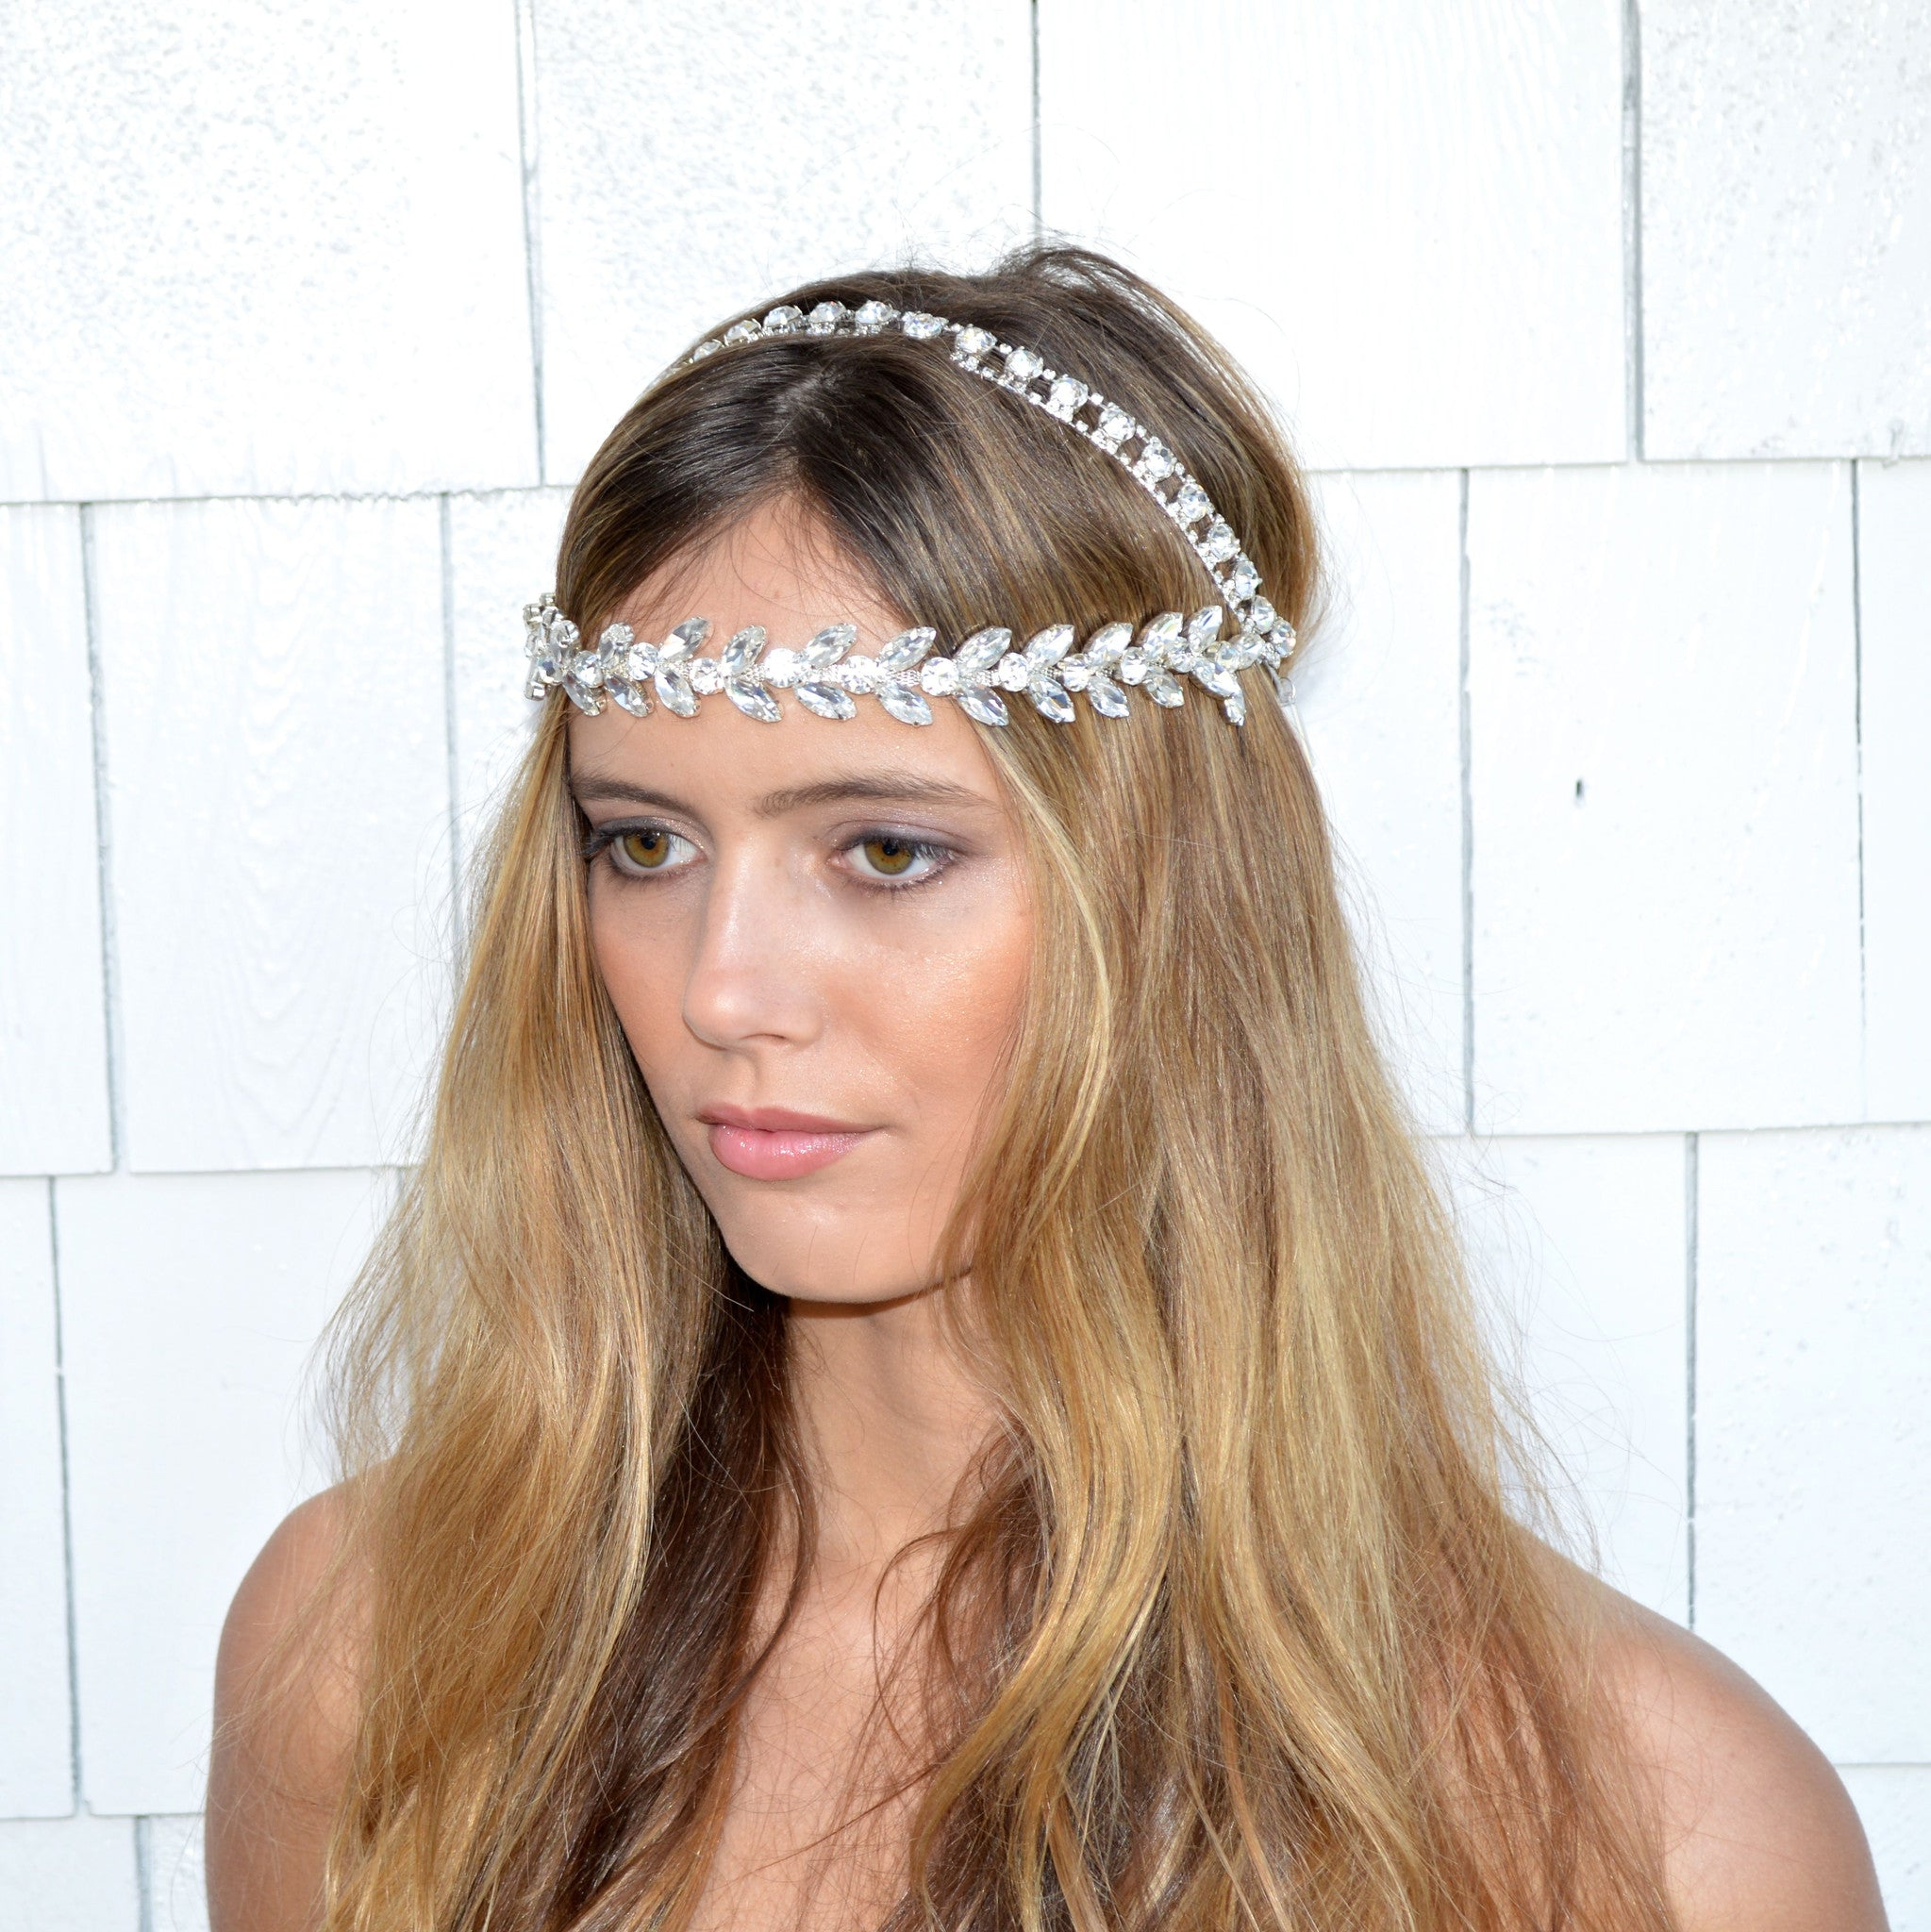 The Aphrodite Headpiece